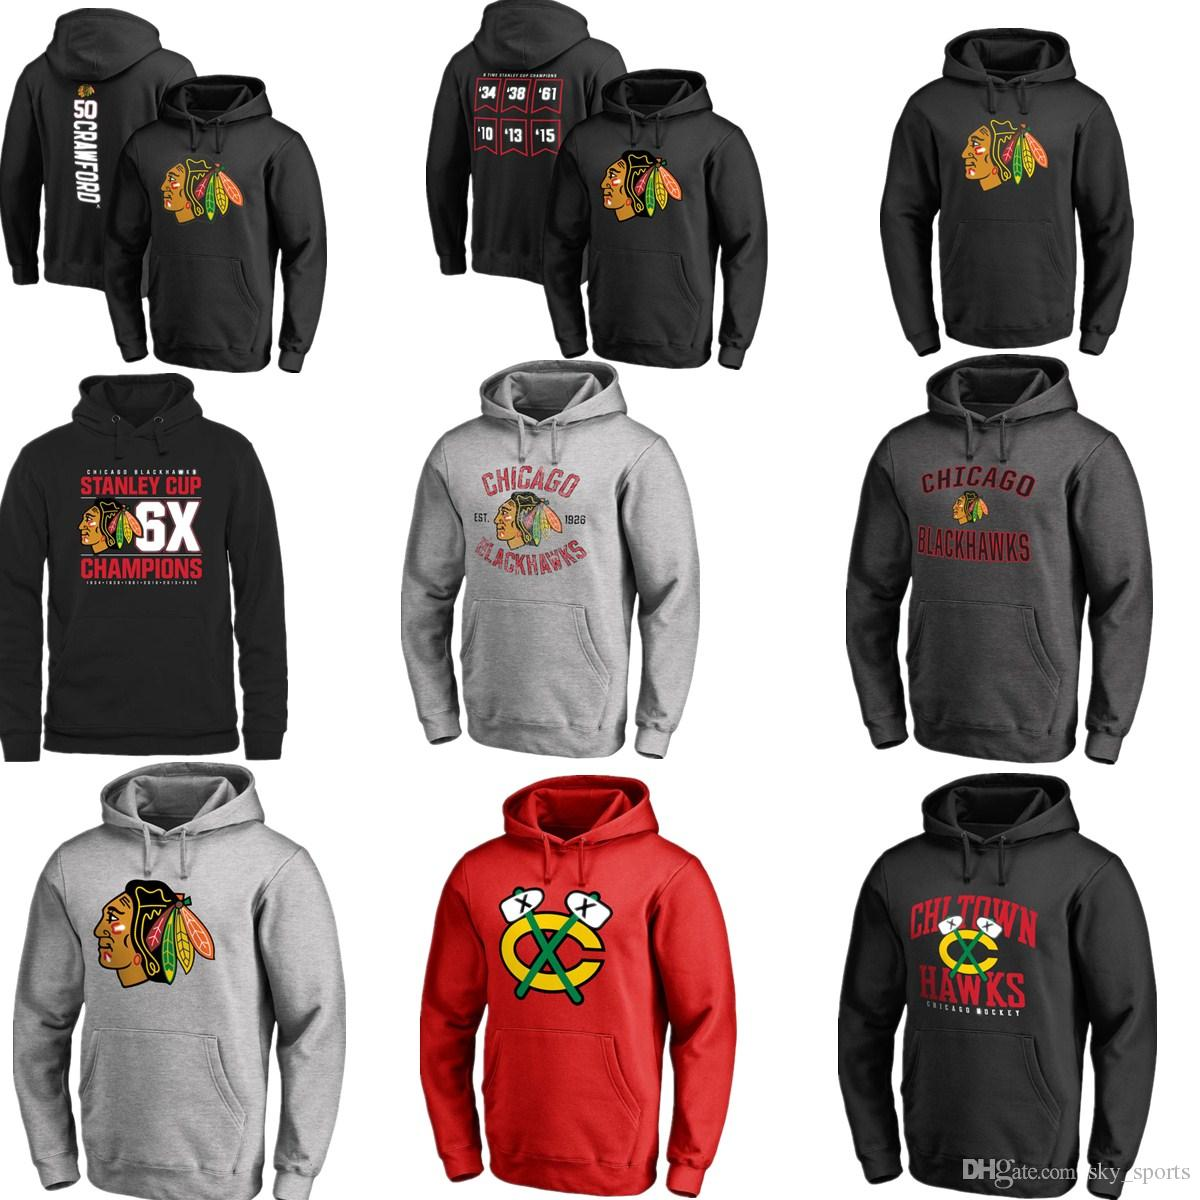 best website 724f2 fbc90 Name Sky Toews And From Nhl 2019 19 Dhgate 88 Chicago ...